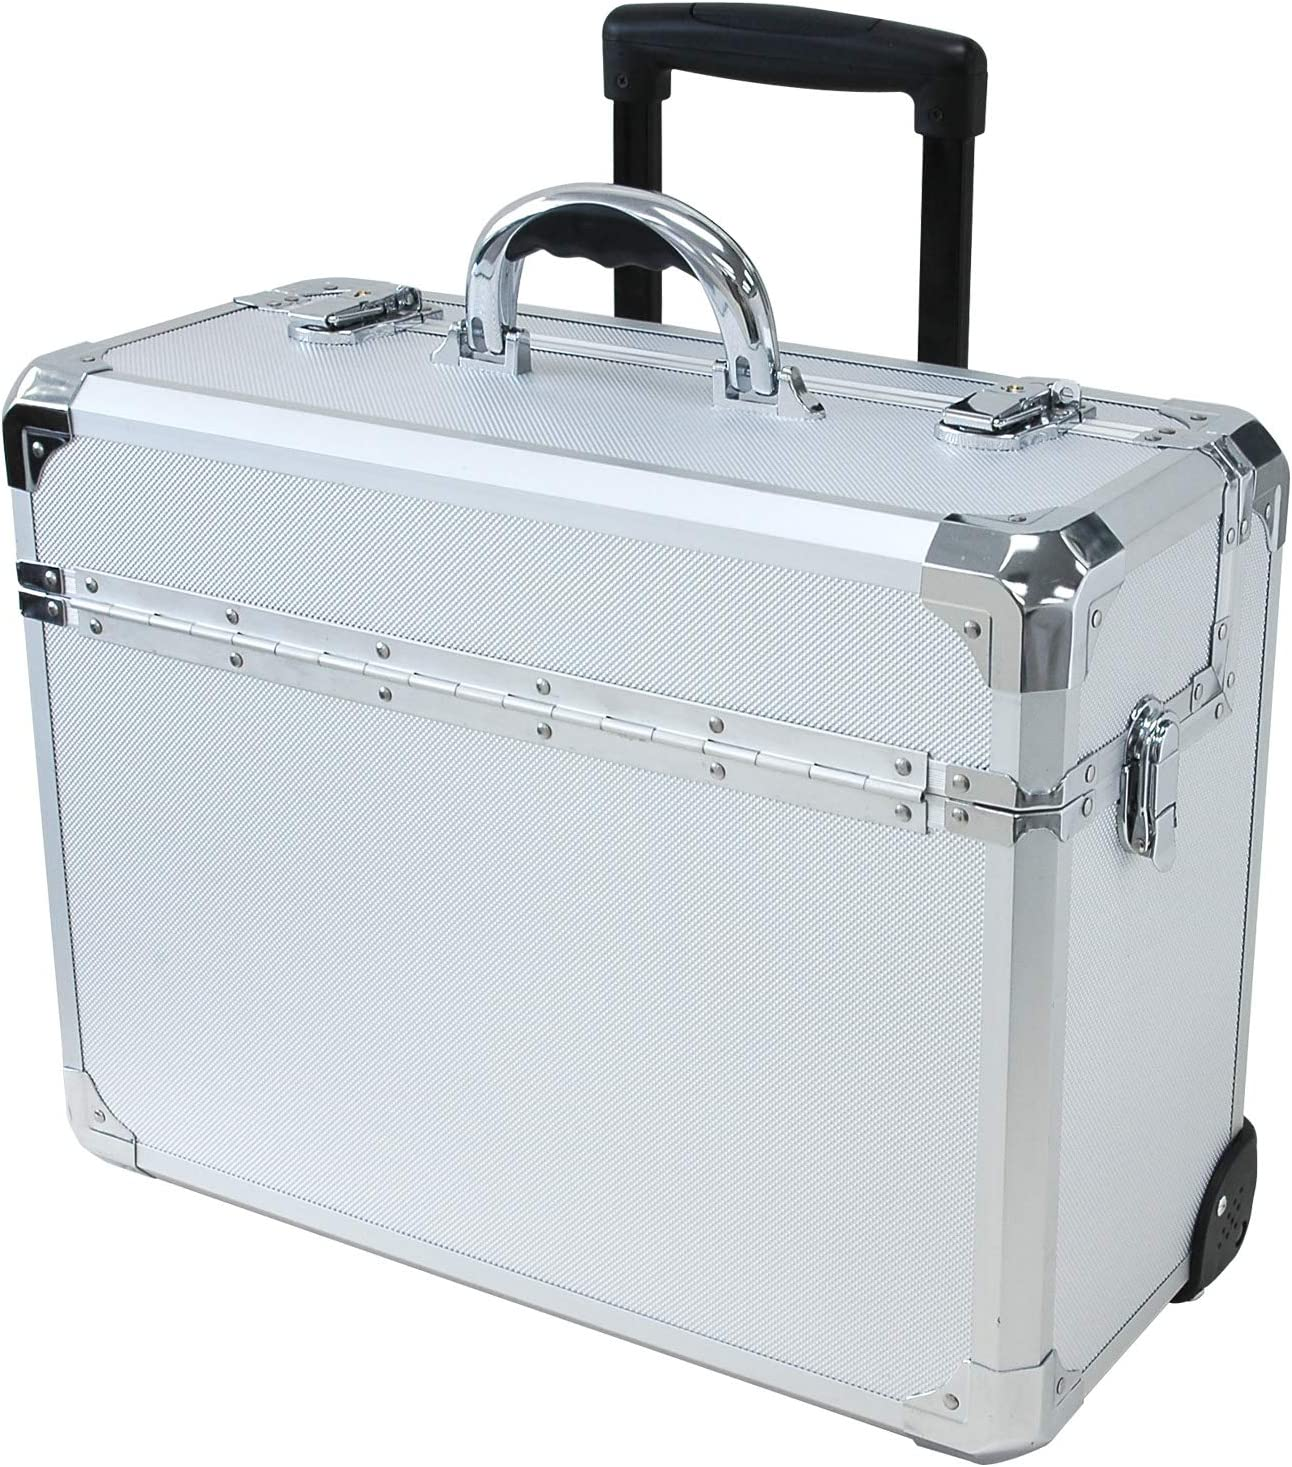 Silver 18-1//4 X 8 X 13-3//4 In Case International T.z Apl-410t Sd Wheeled Pilot Case T.Z